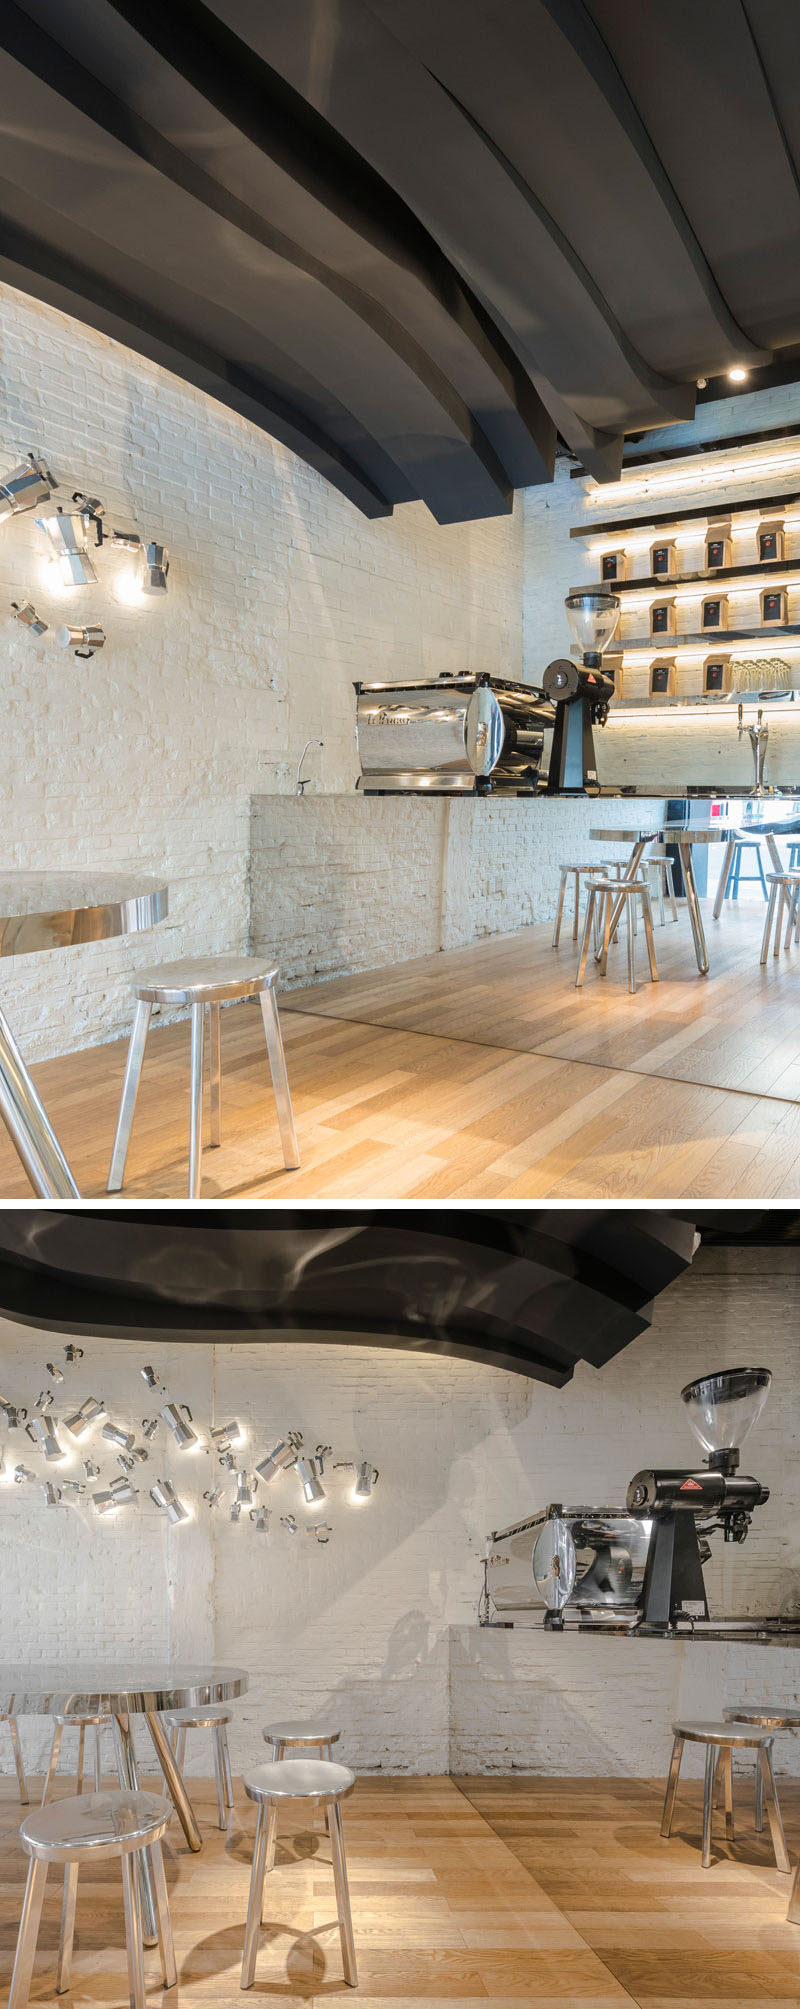 The counter in this cafe is mirrored, making the space feel larger.